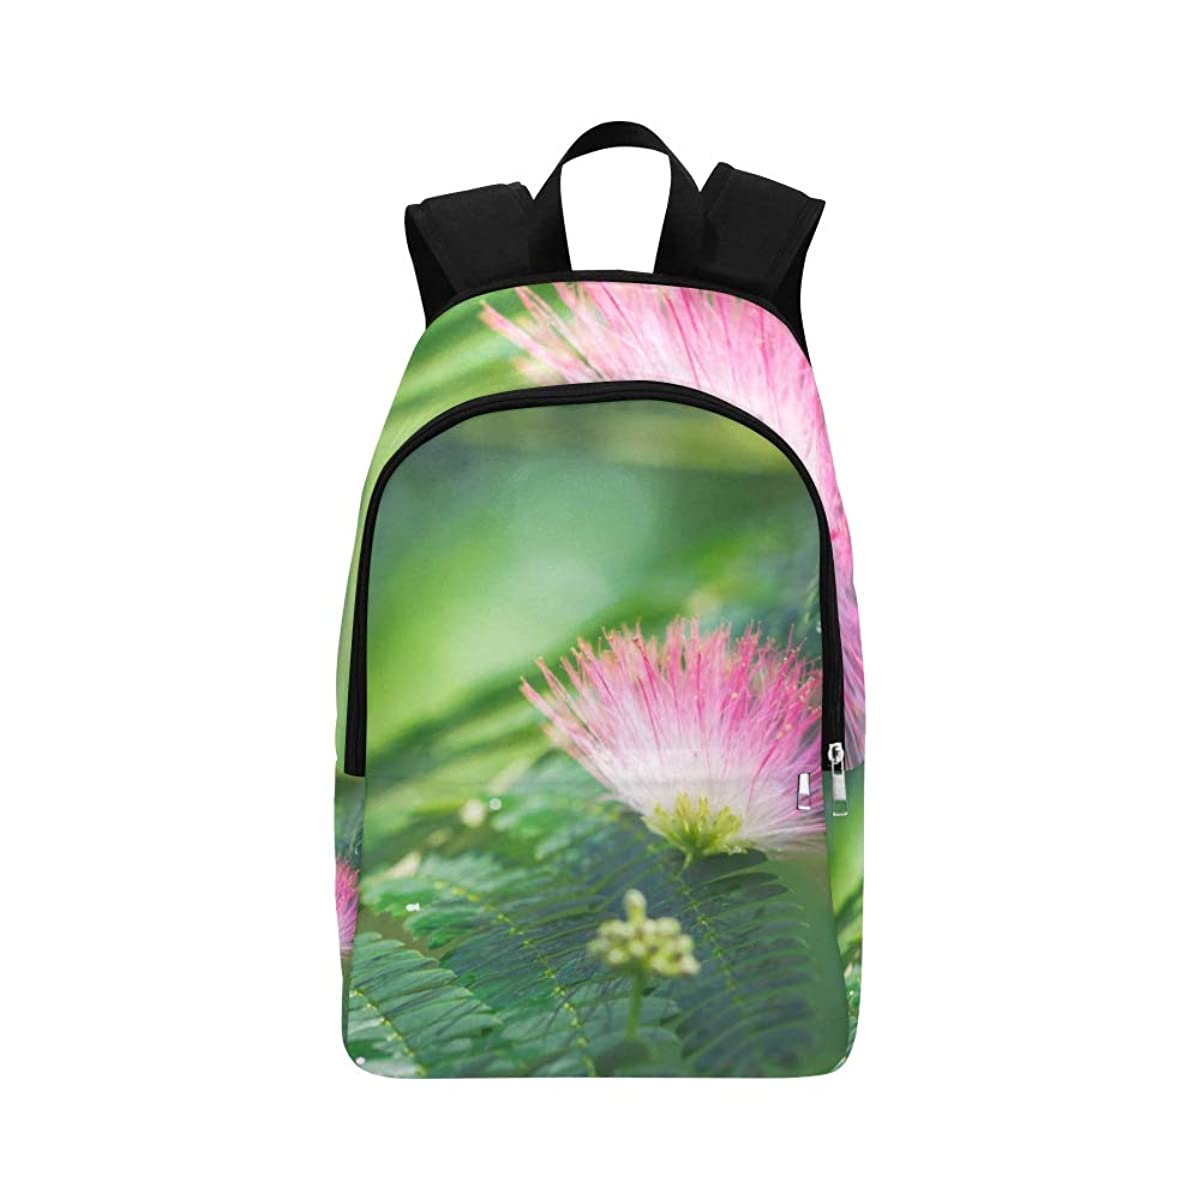 APJDFNKL Close Up of Beautiful Albizia Blossom Casual Daypack Travel Bag College School Backpack for Mens and Women